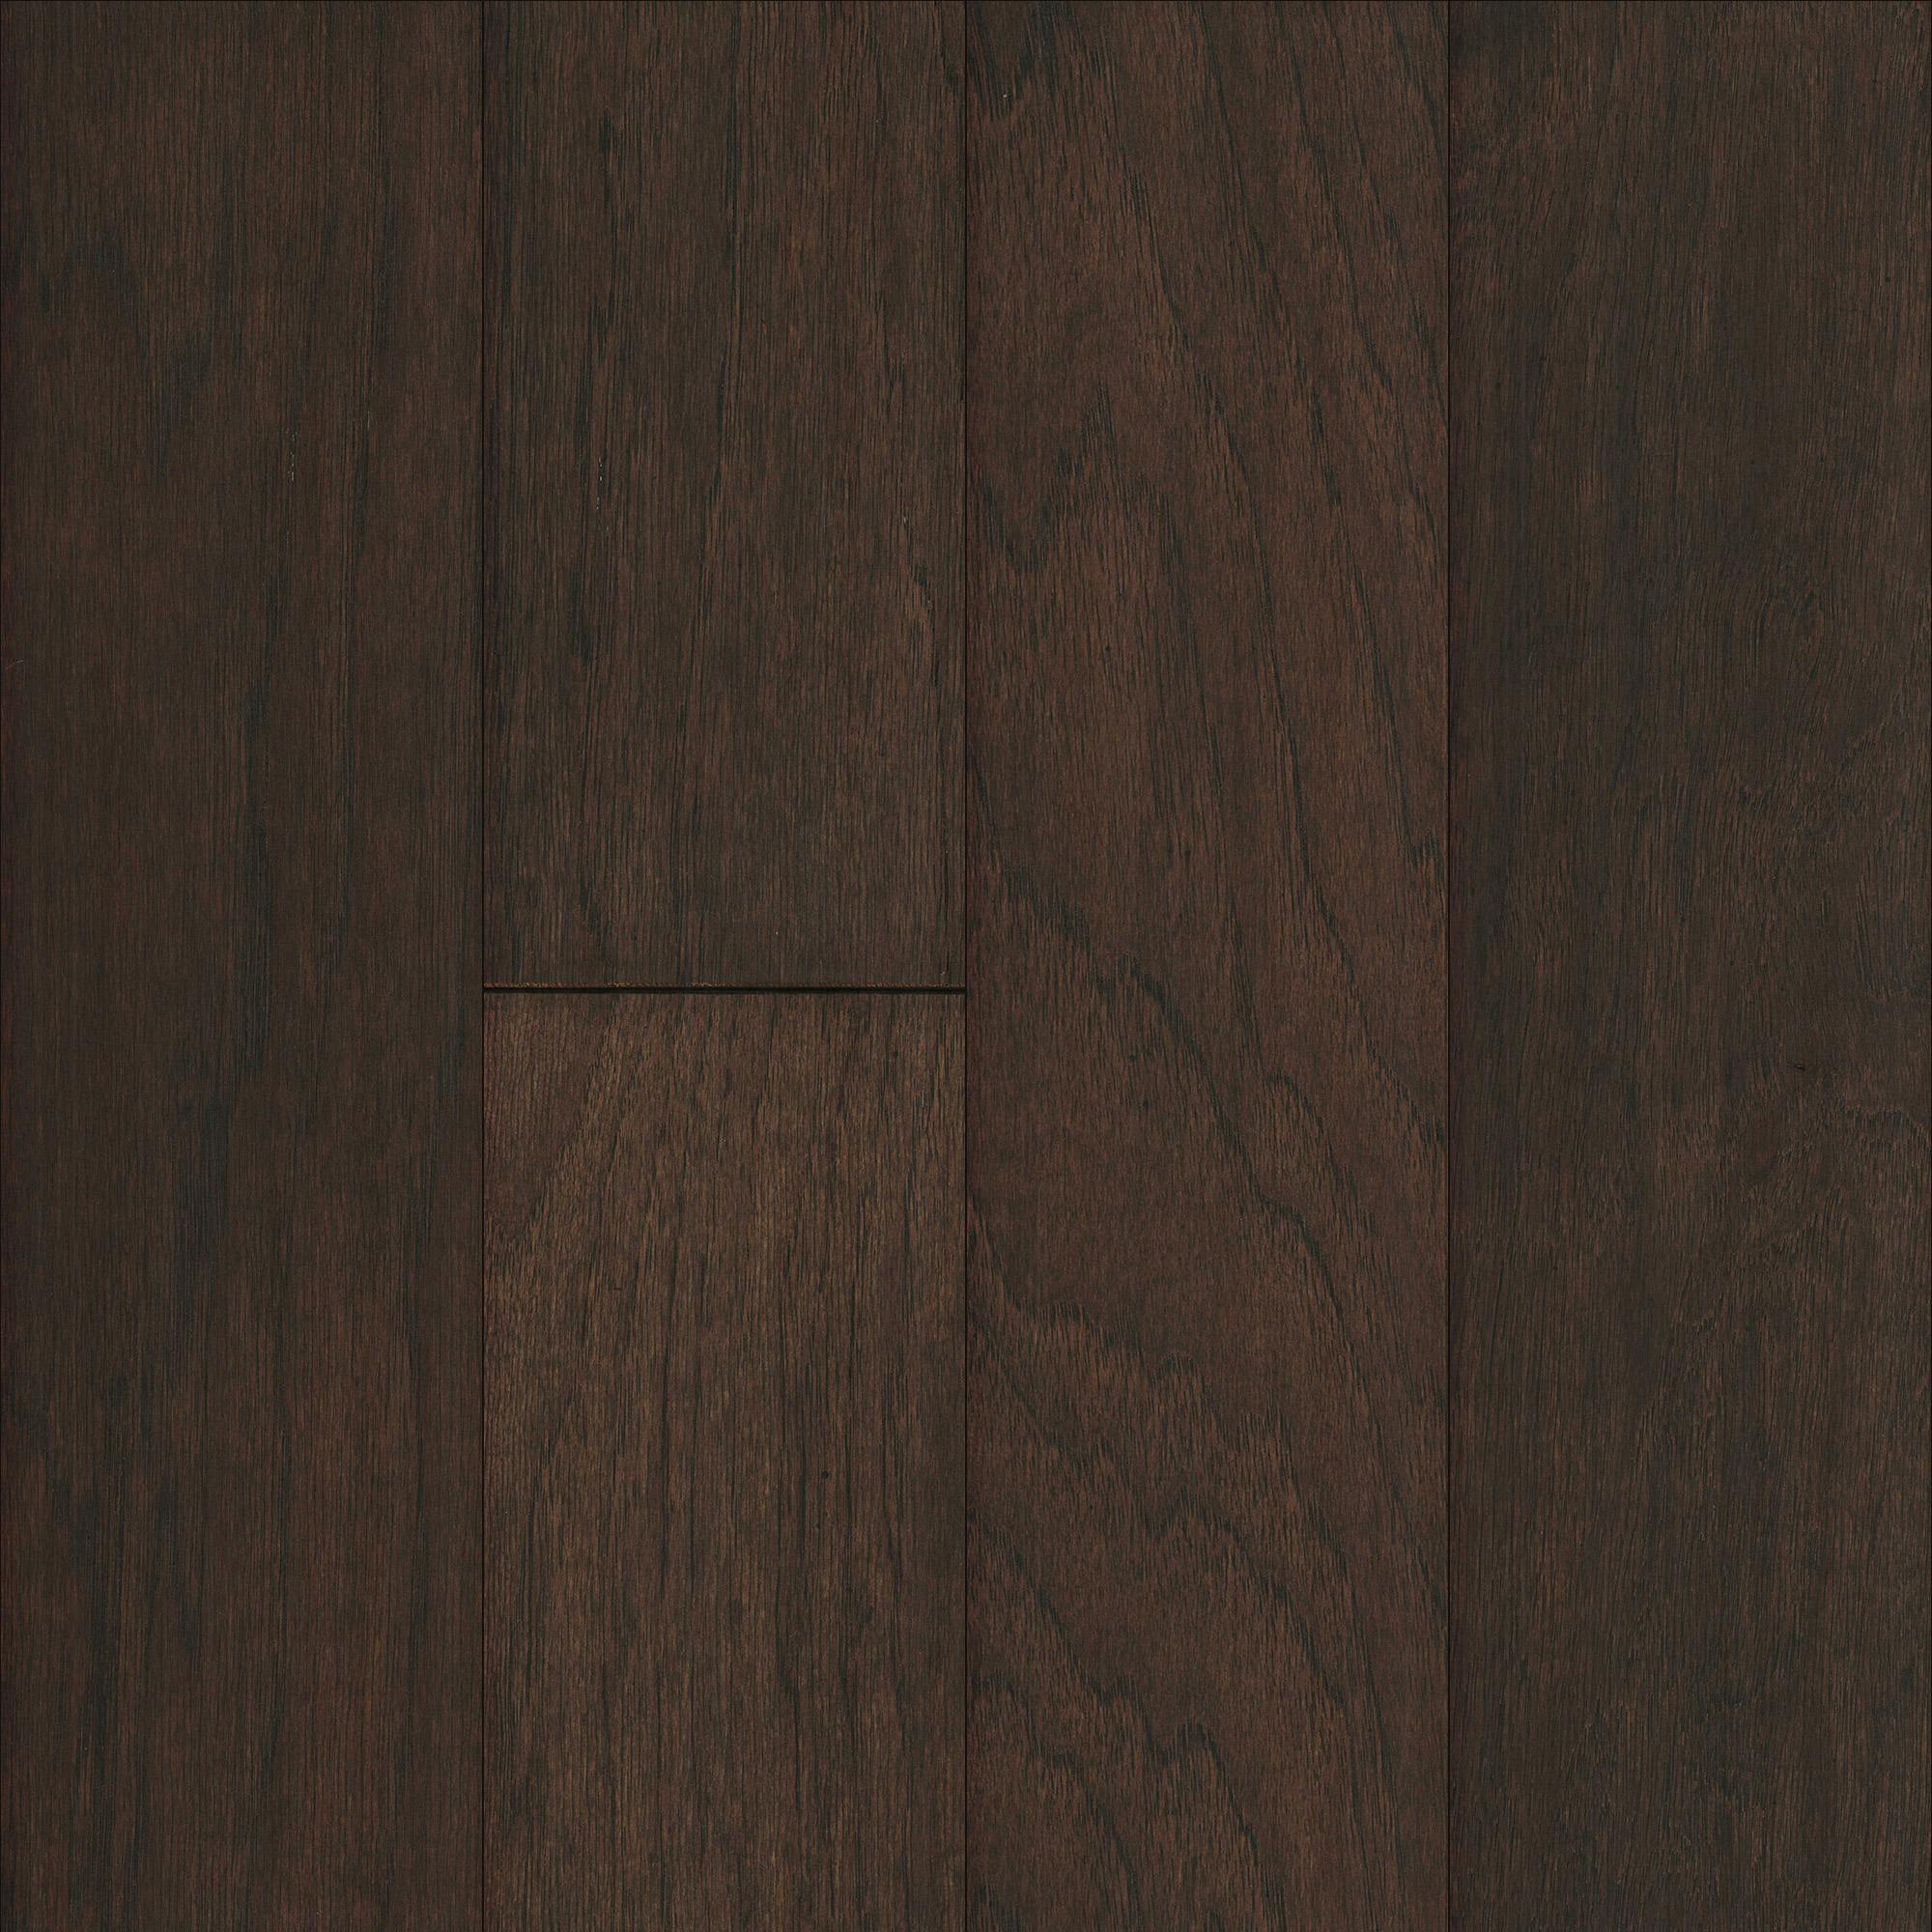 buy hickory hardwood flooring of mullican devonshire hickory espresso 5 engineered hardwood flooring with hickory espresso 5 x 40 2000 a